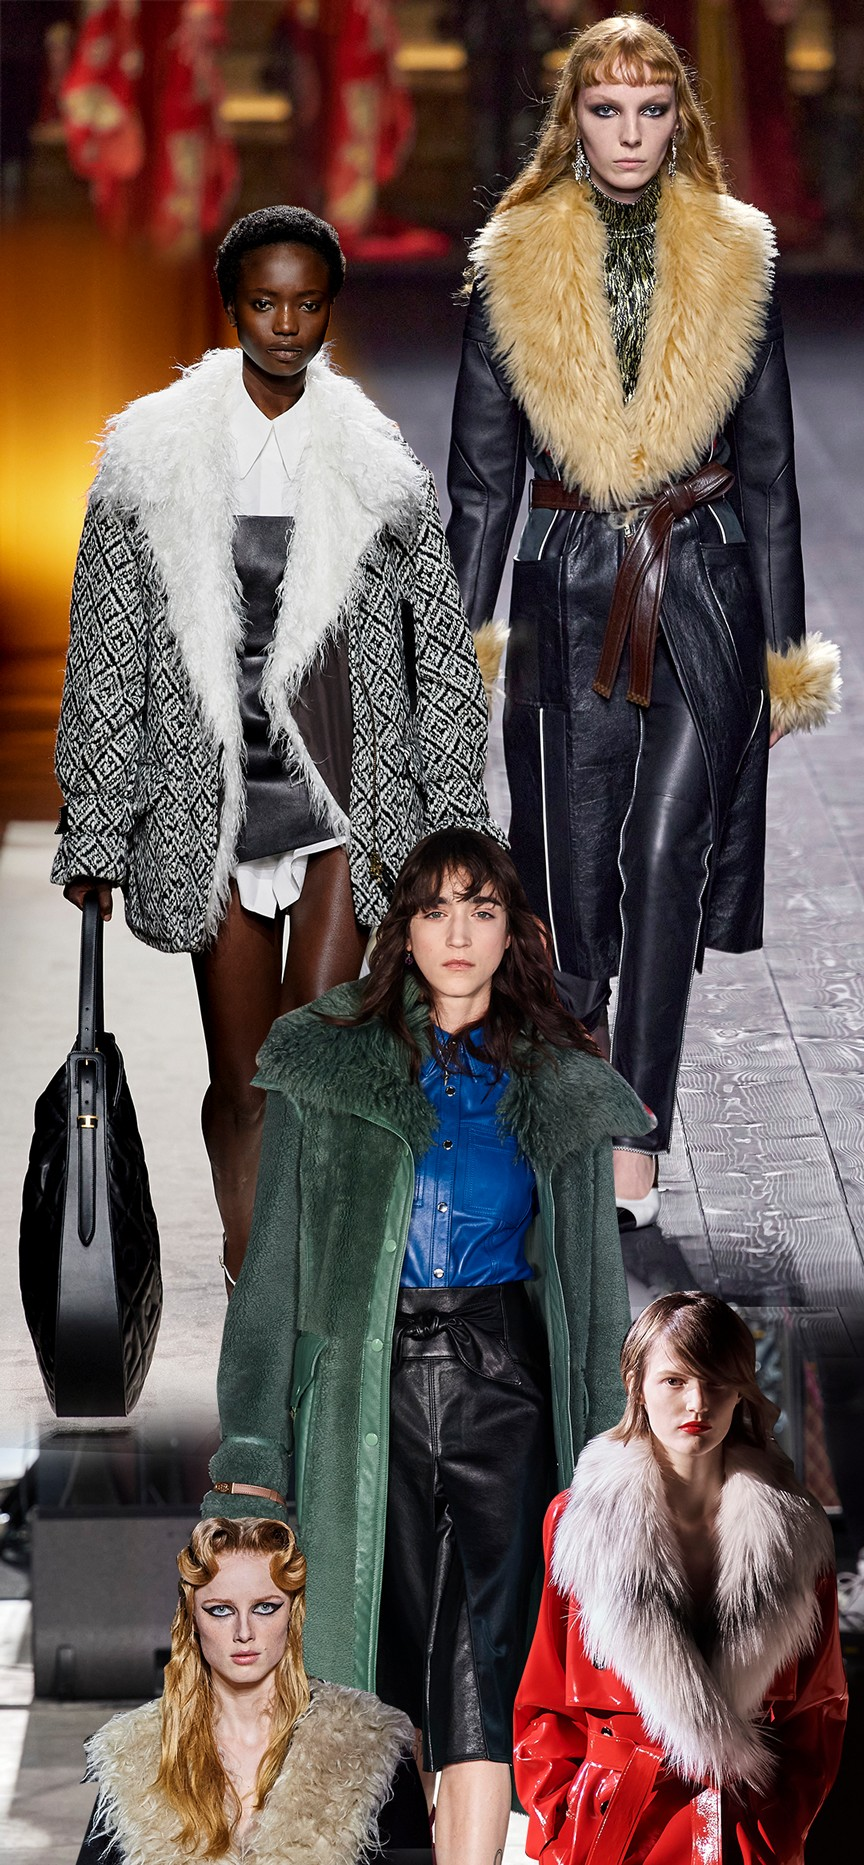 The Hottest And Most Coveted Fashion Trends From The Fall 2020 Runways (4) fashion trend The Hottest And Most Coveted Fashion Trends From The Fall 2020 Runways The Hottest And Most Coveted Fashion Trends From The Fall 2020 Runways 4